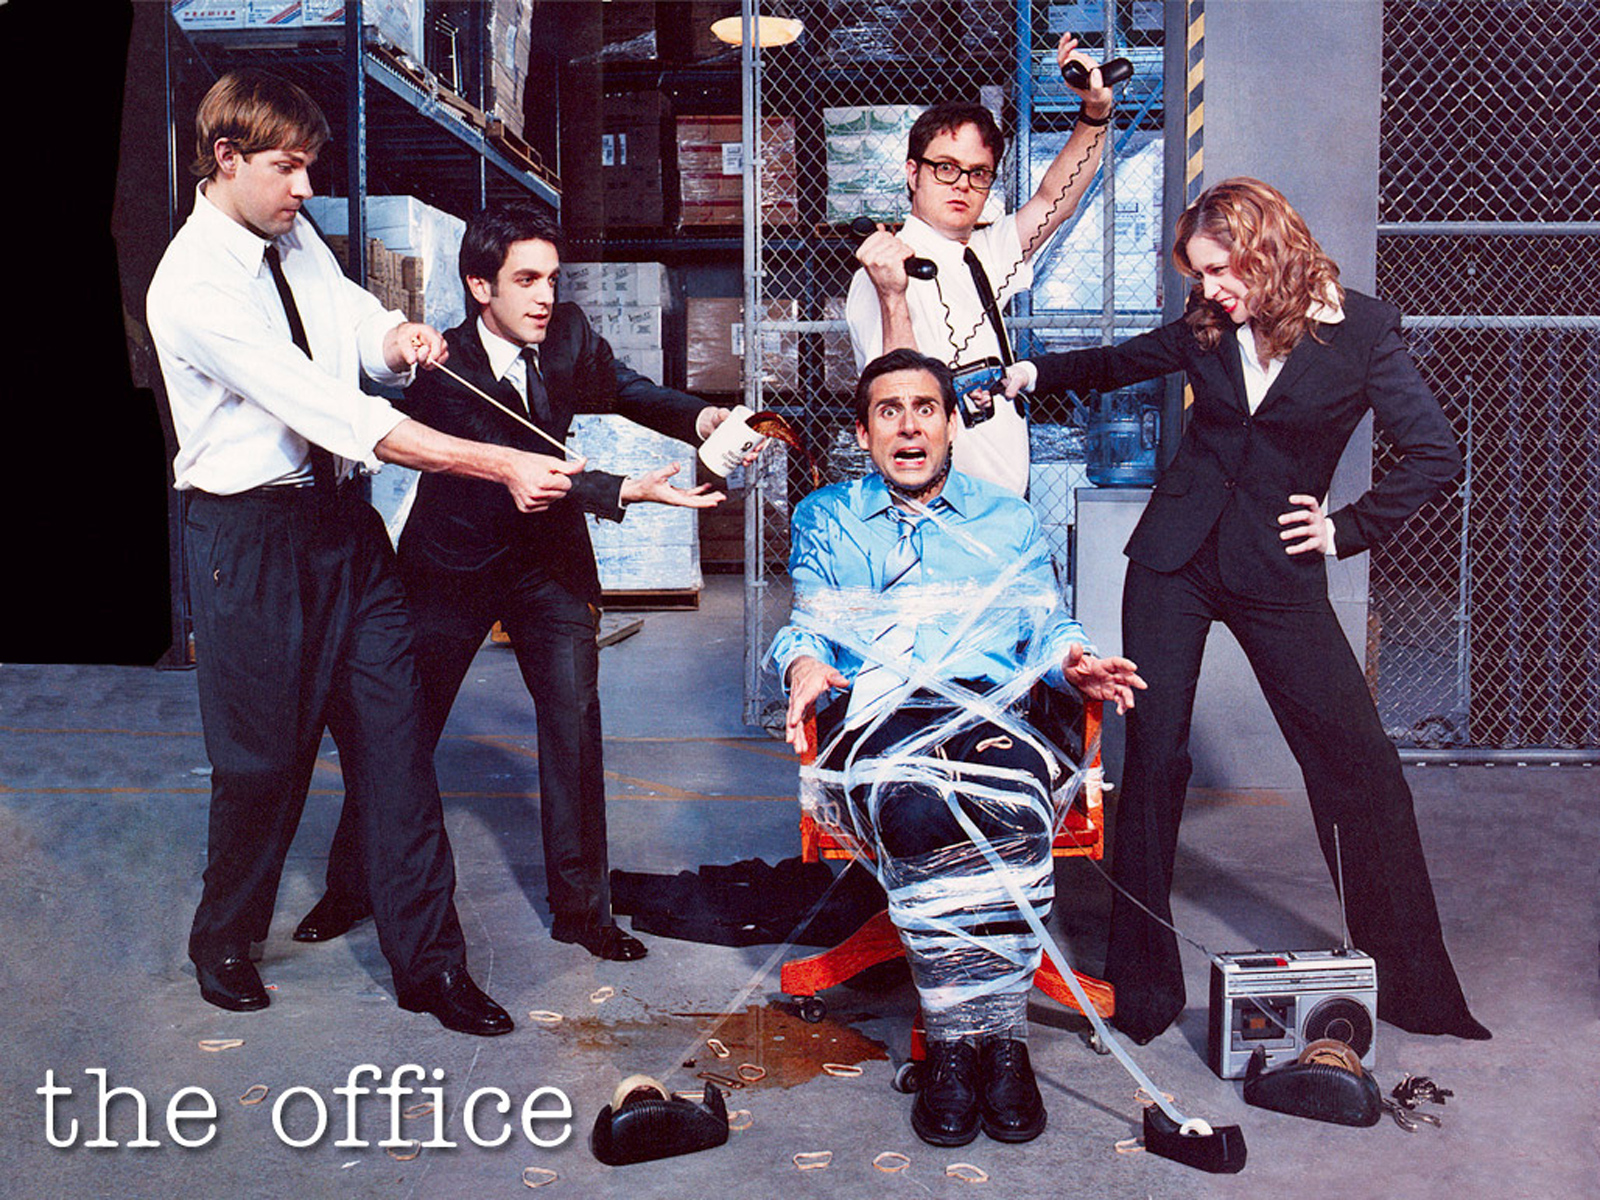 45 The Office (US) HD Wallpapers